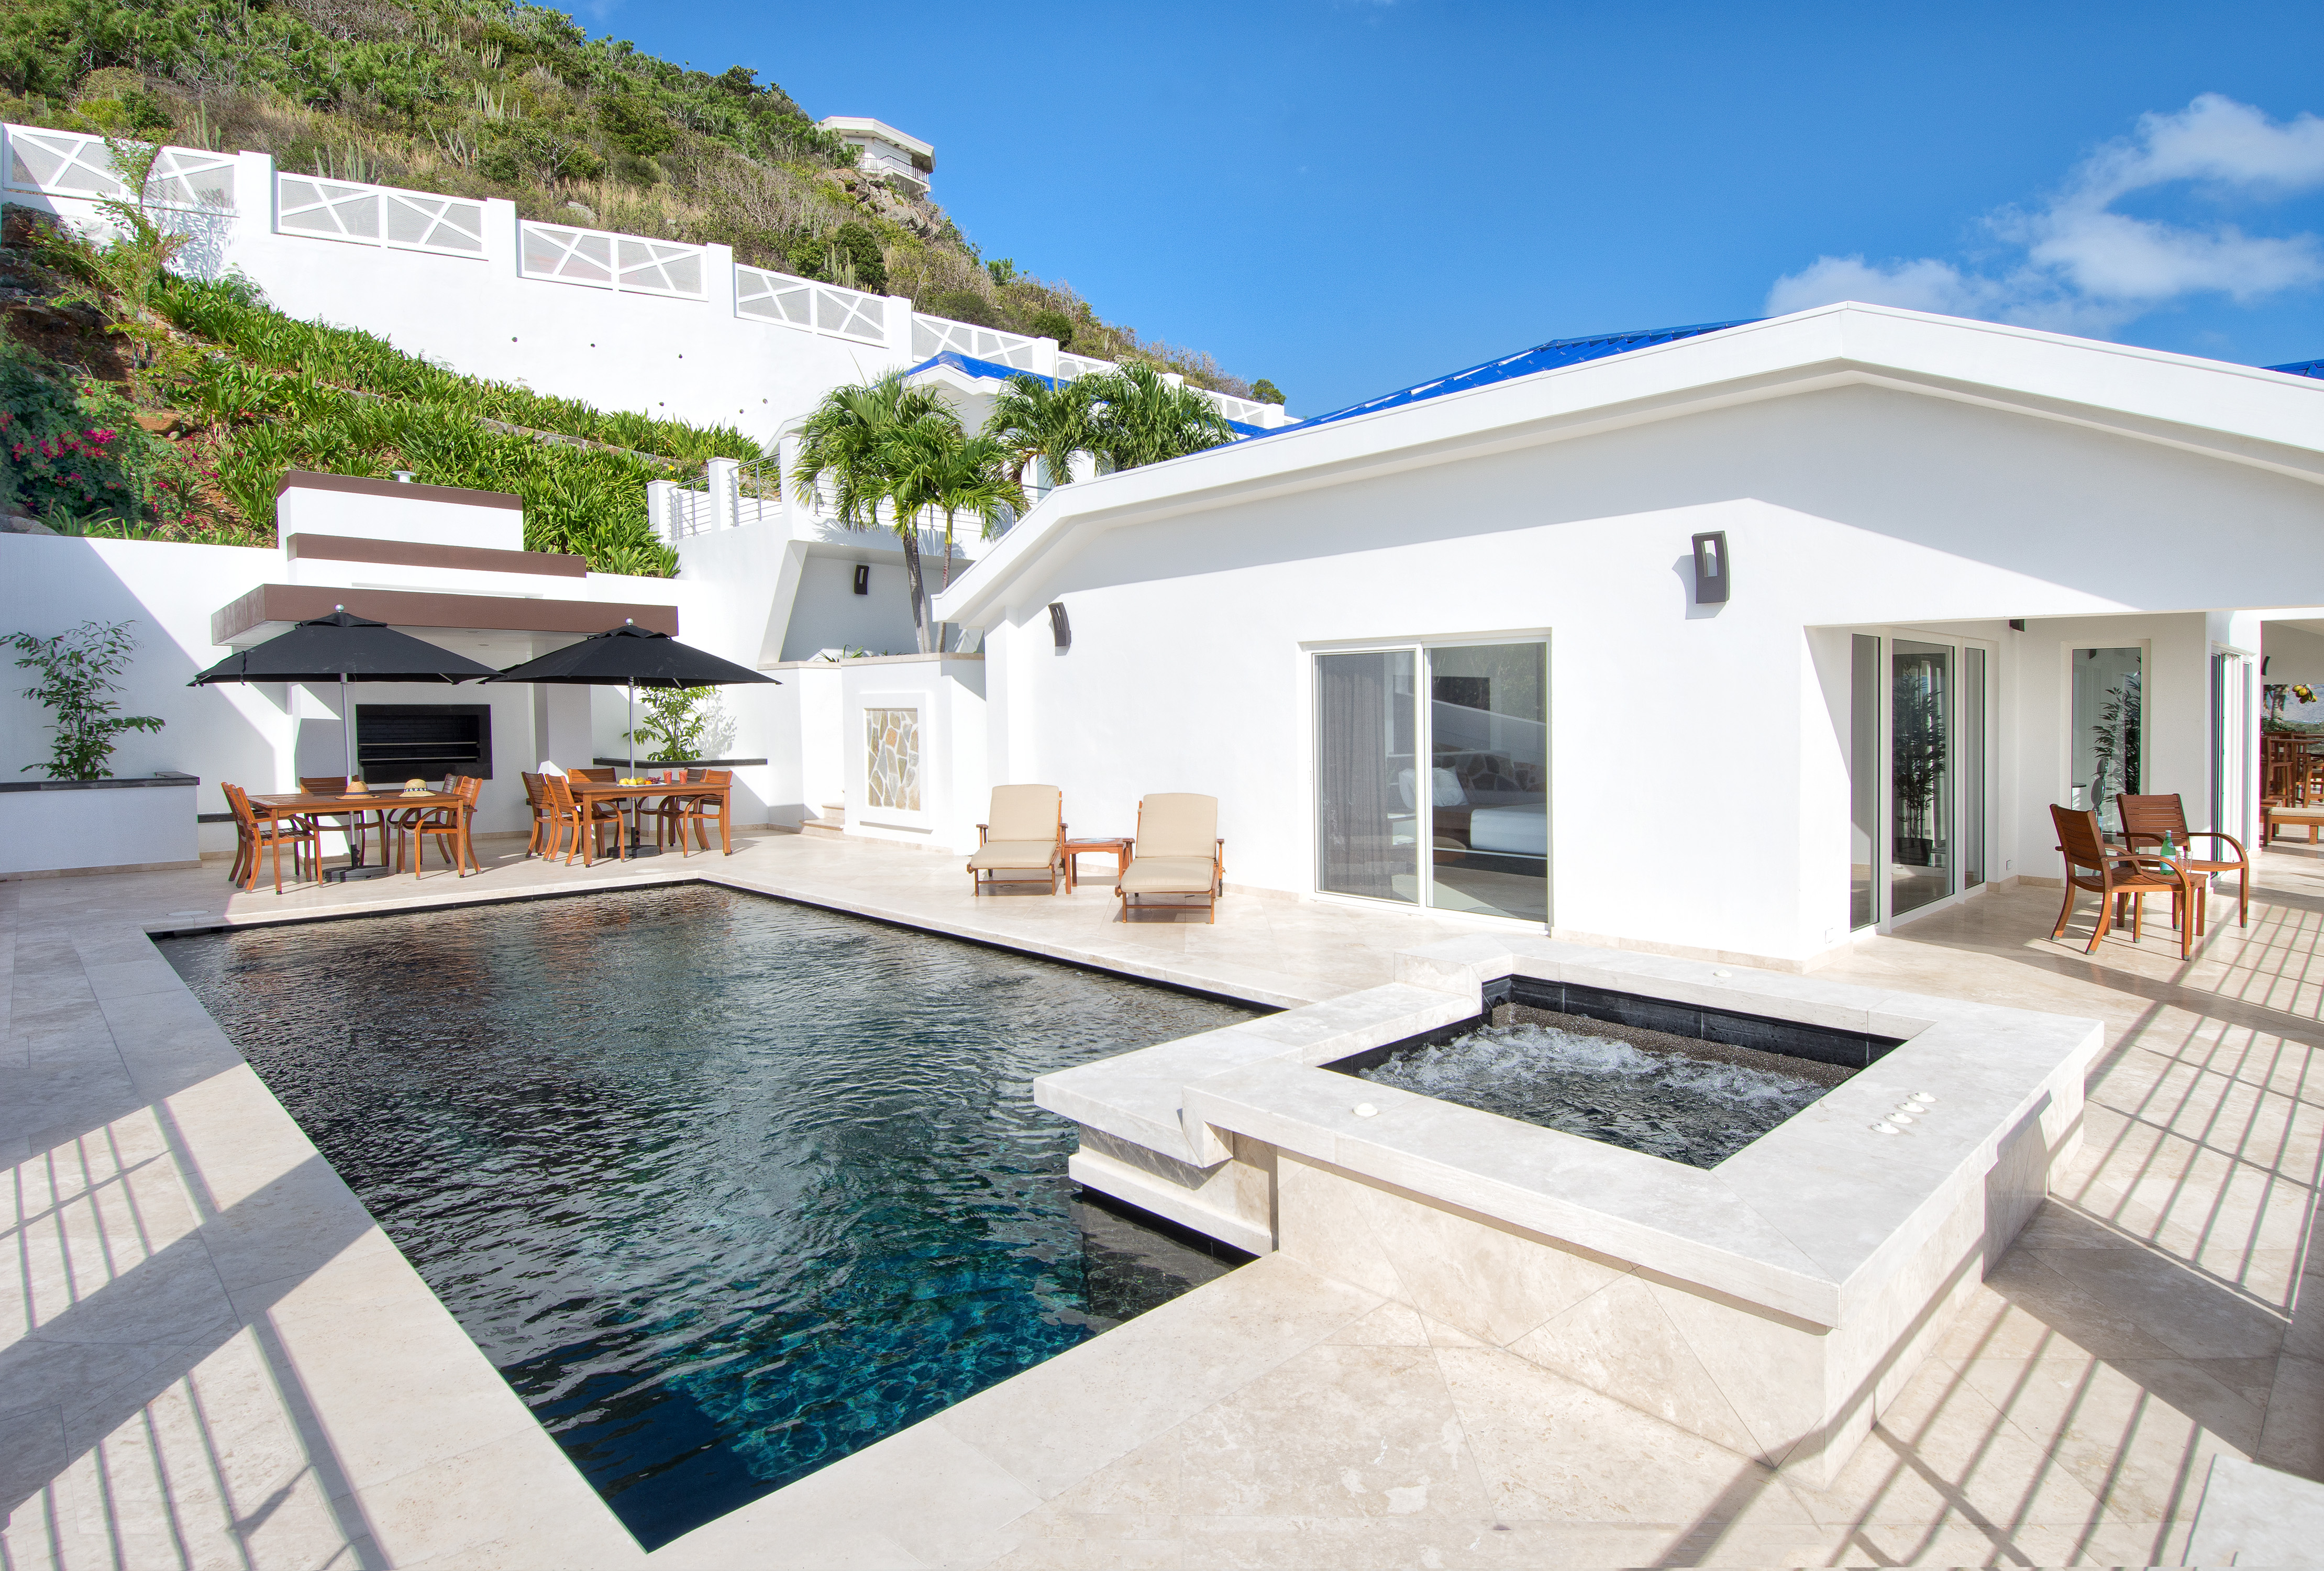 SM101 Private Pool + Jacuzzi